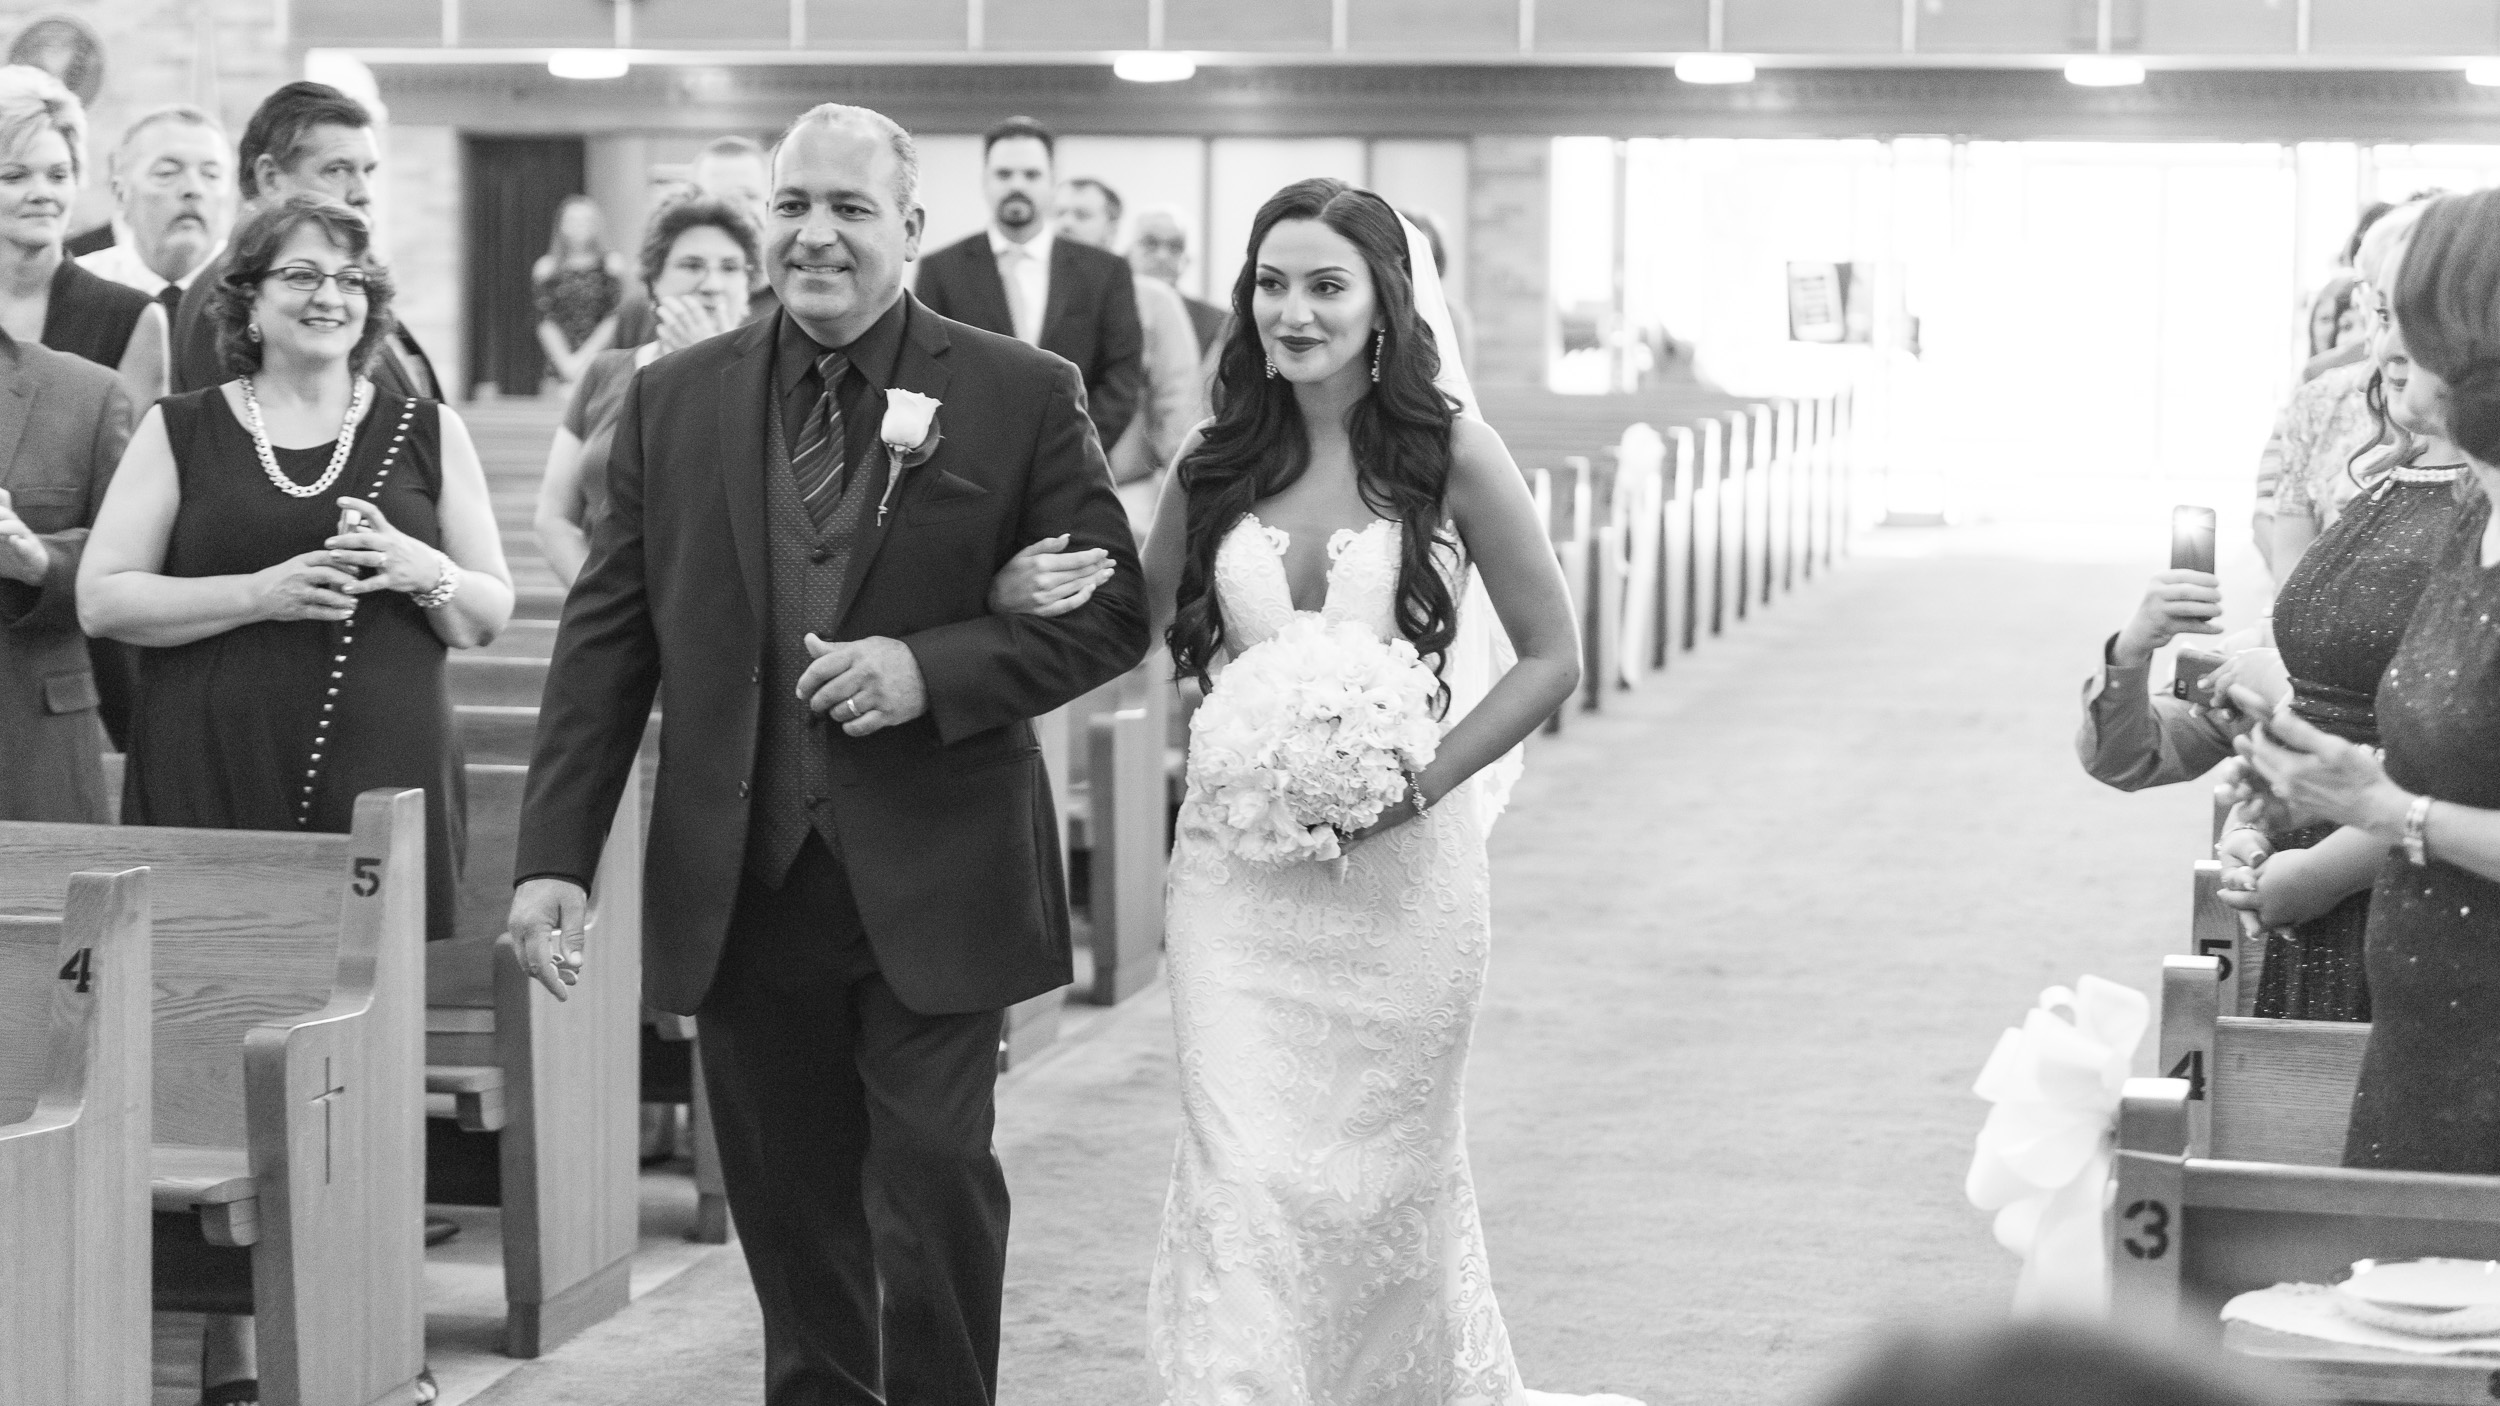 Bride-with-Father-Walking-Down-the-Aisle-2.jpg